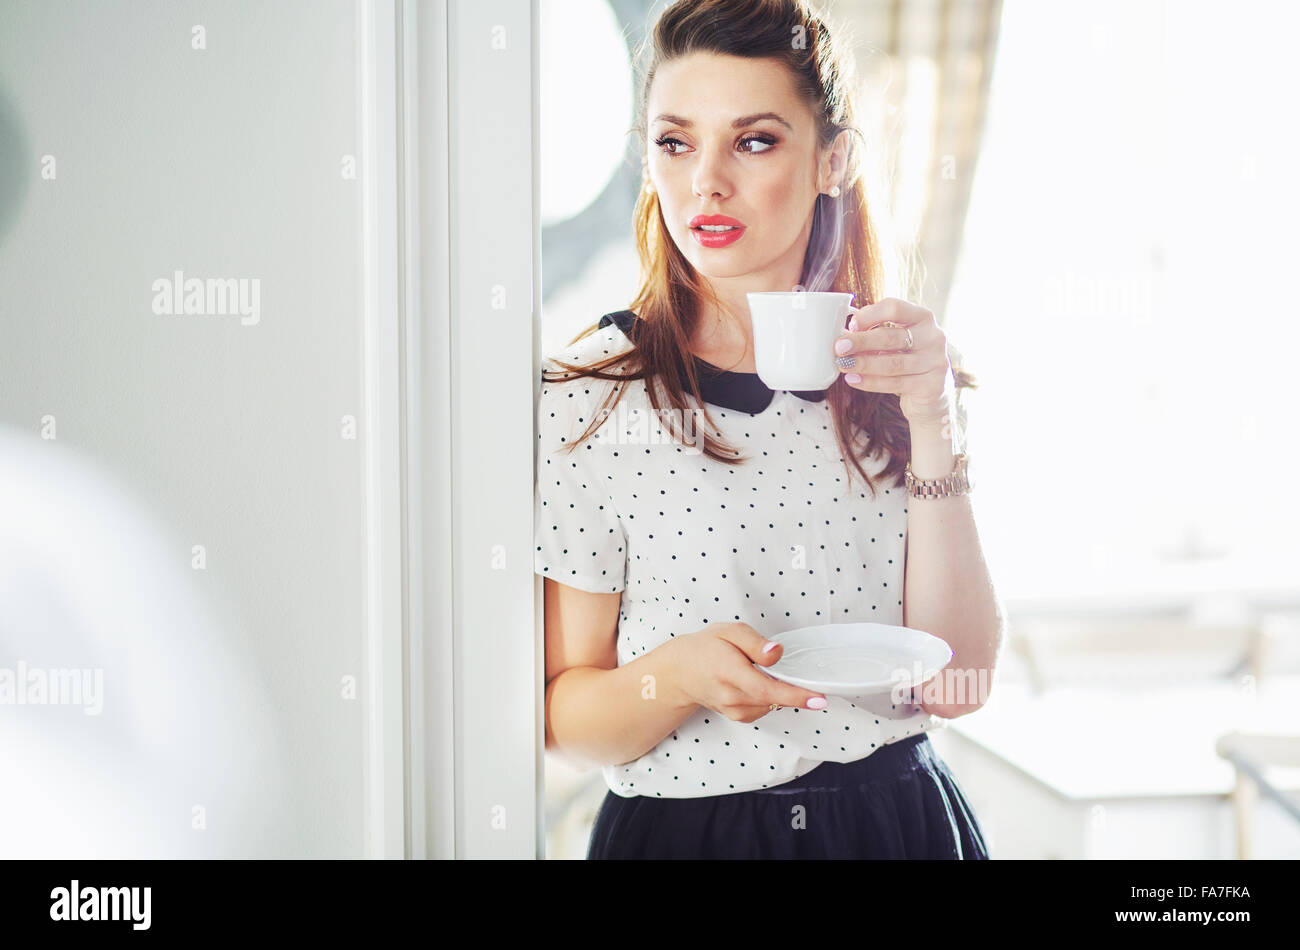 Adorable young woman drinking tasty coffee - Stock Image